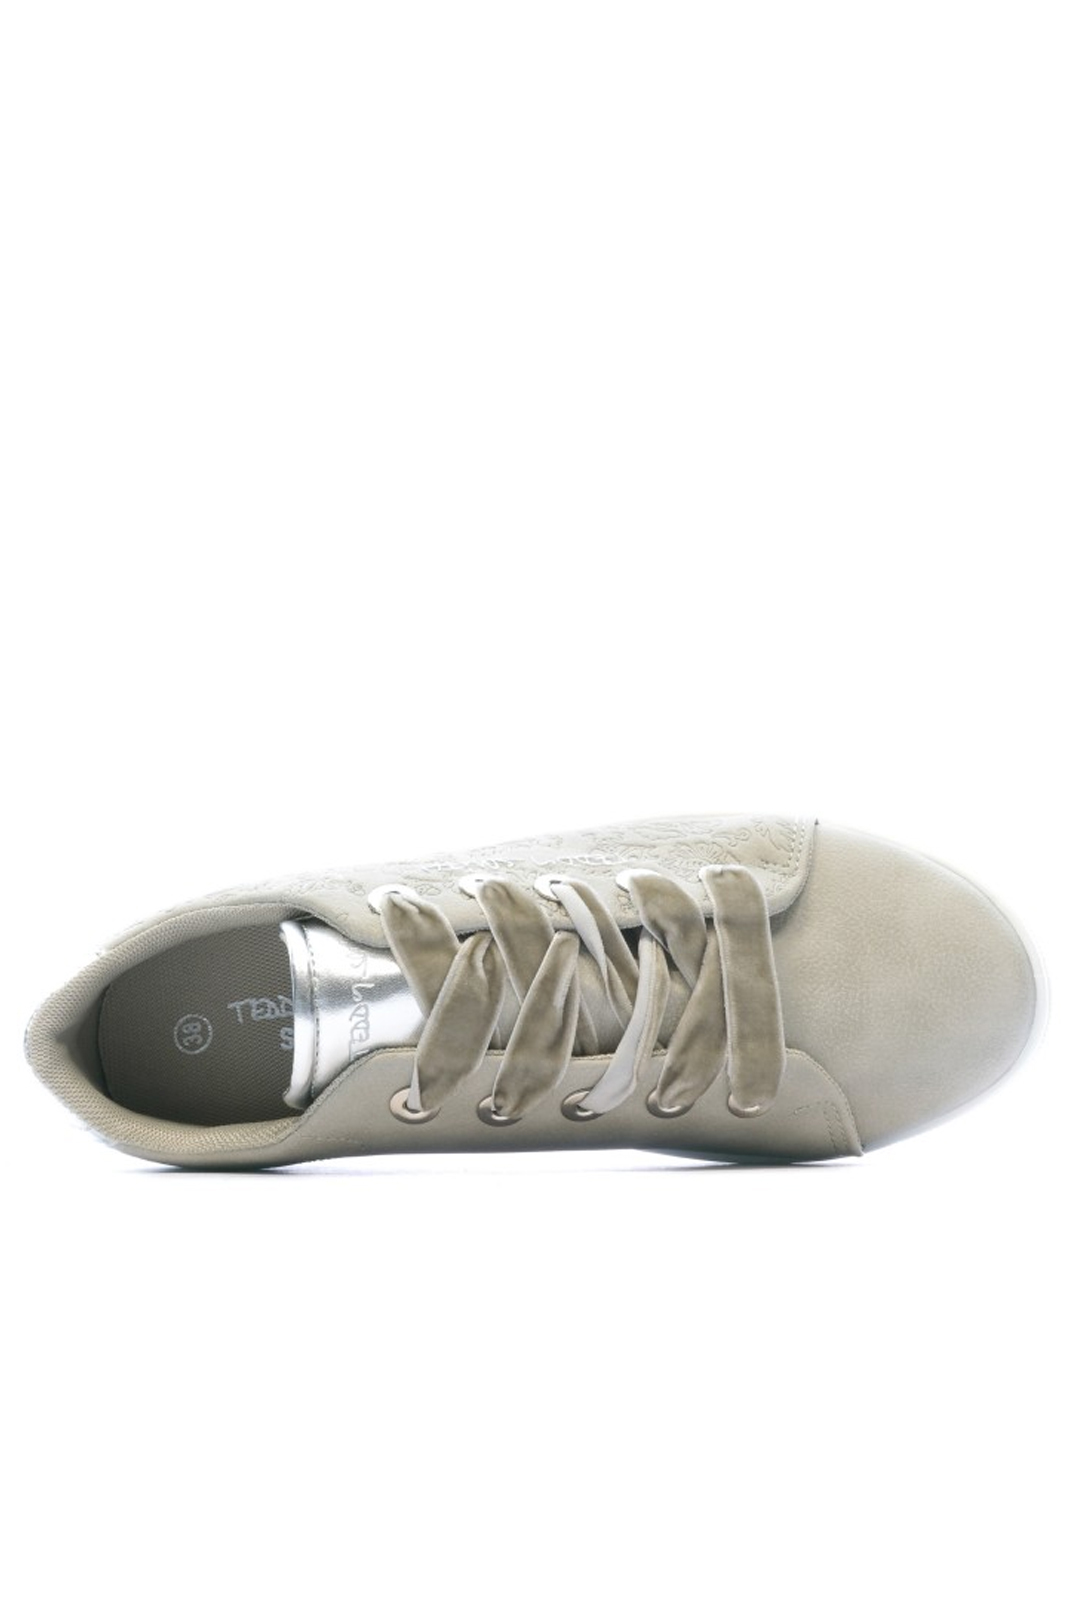 Baskets / Sneakers  Teddy smith TILLY SILVER